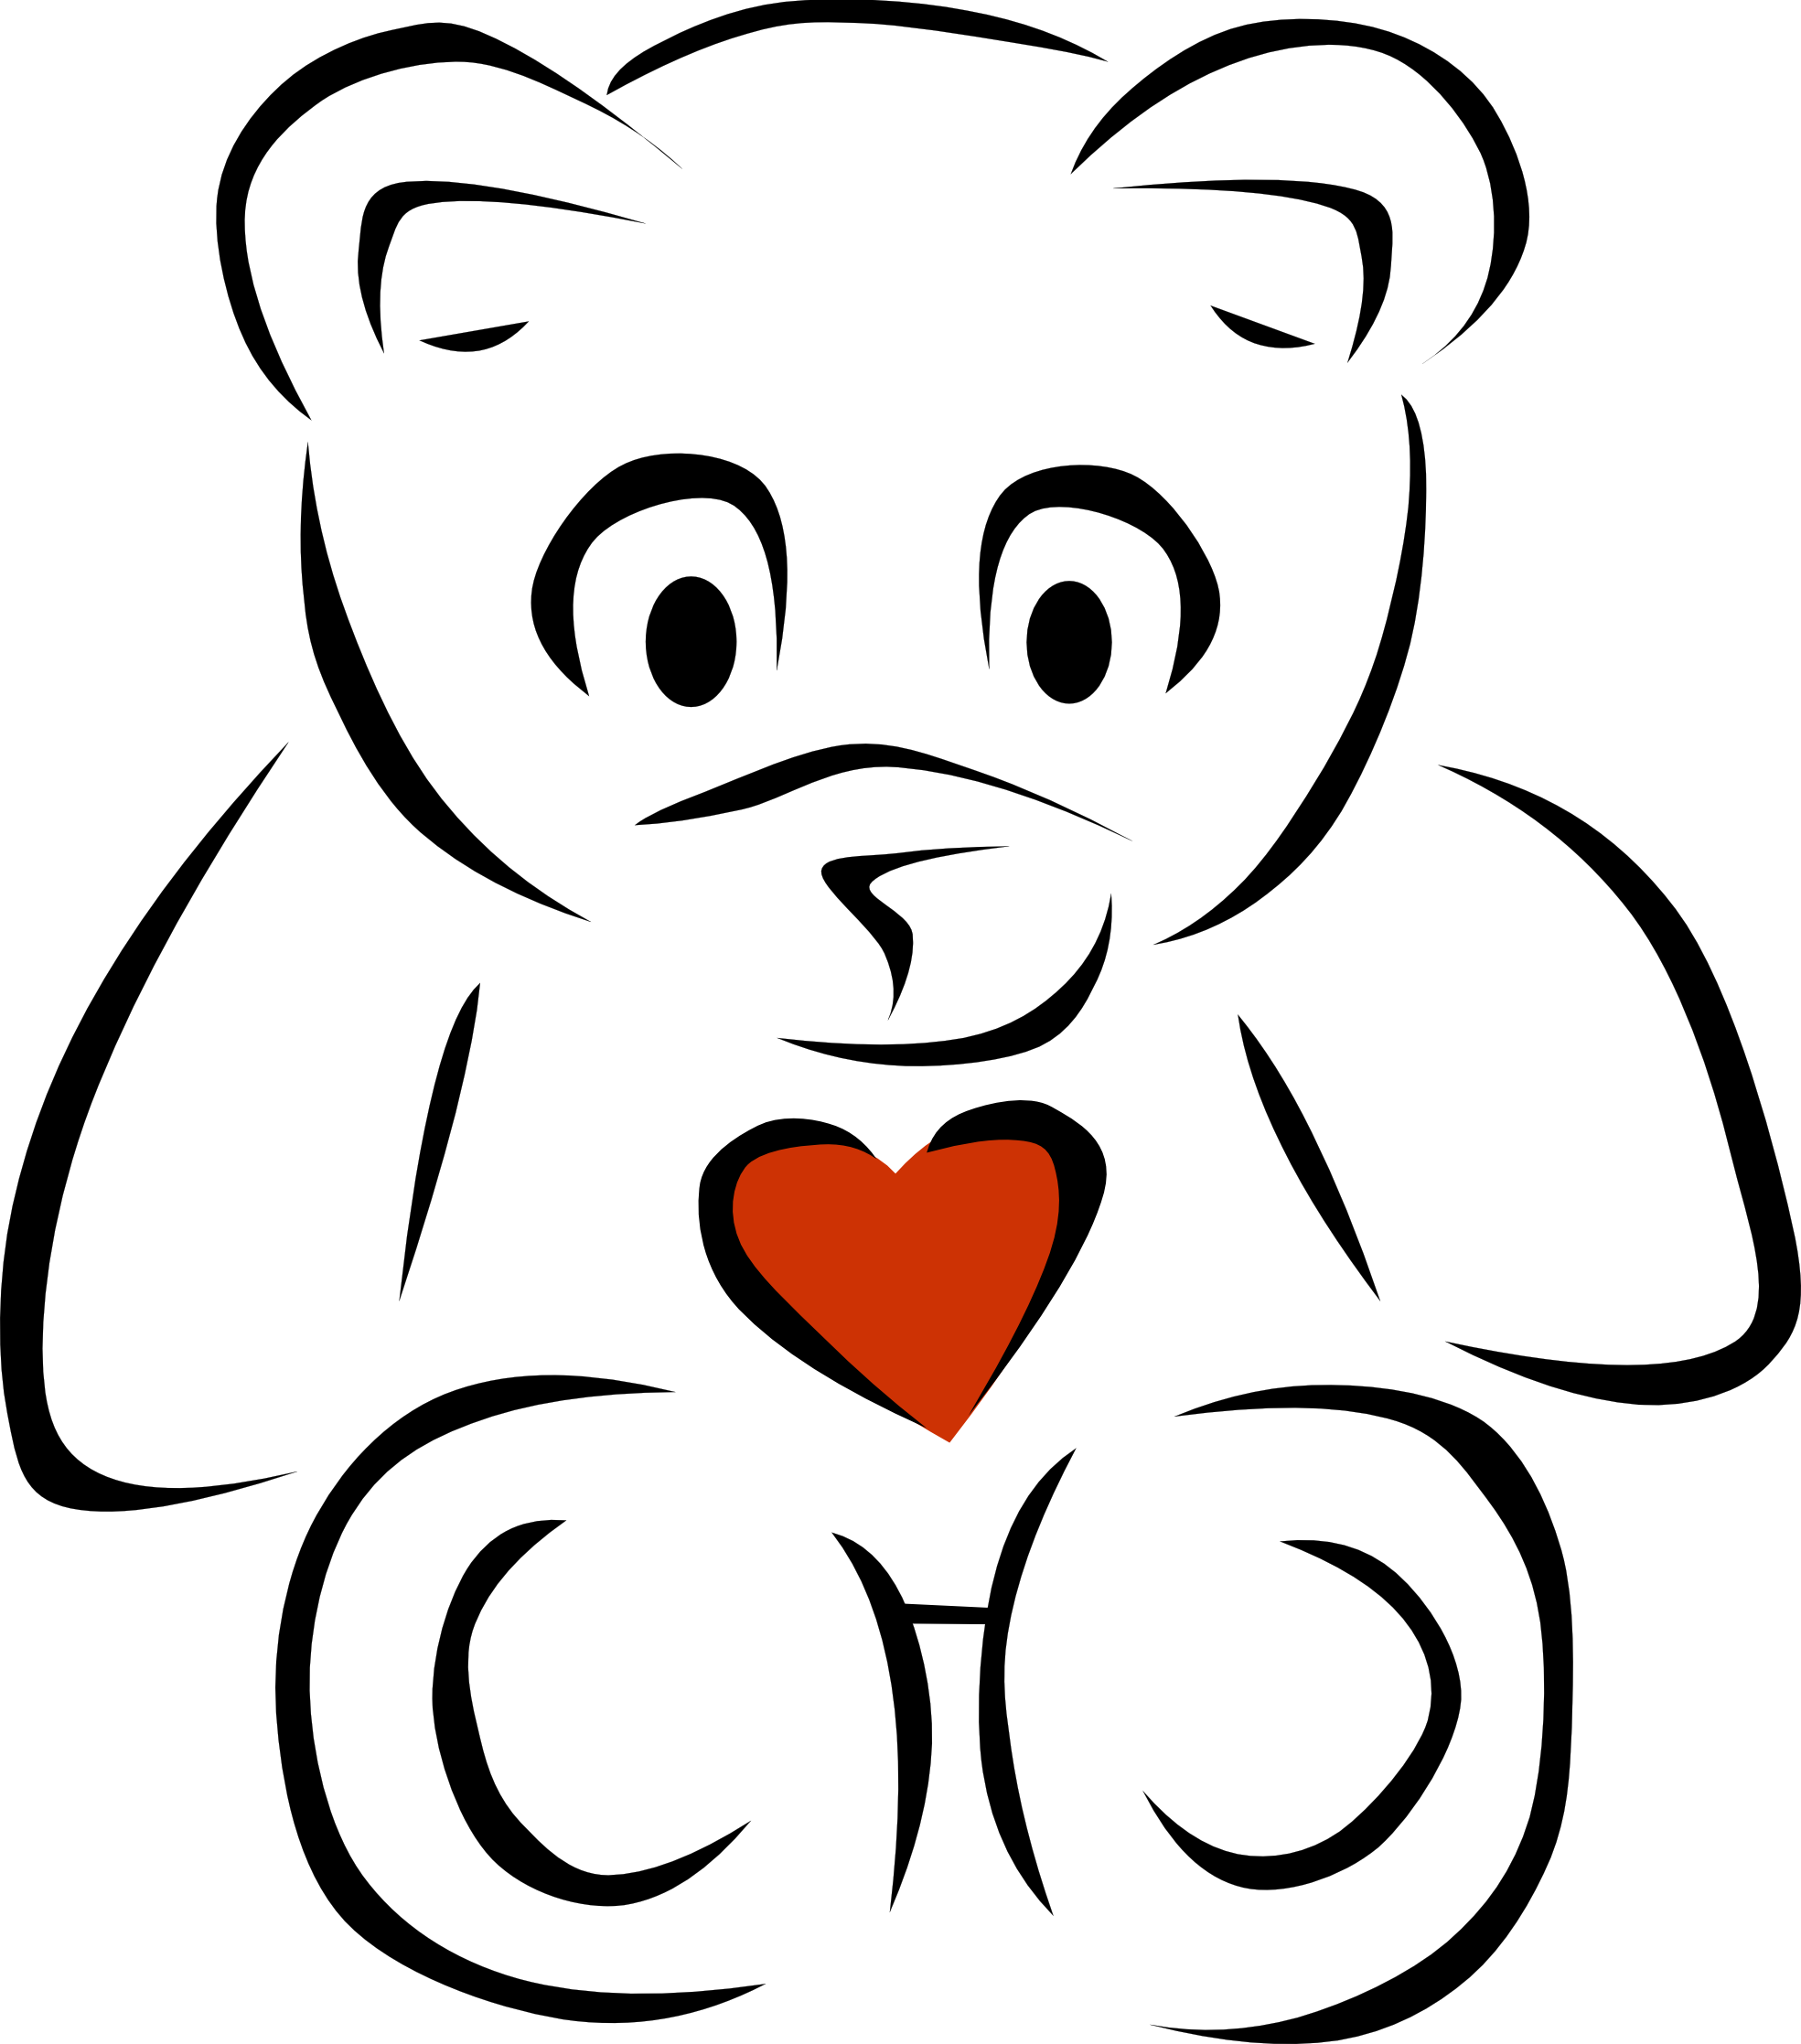 Heart Clipart Free - ClipArt Best